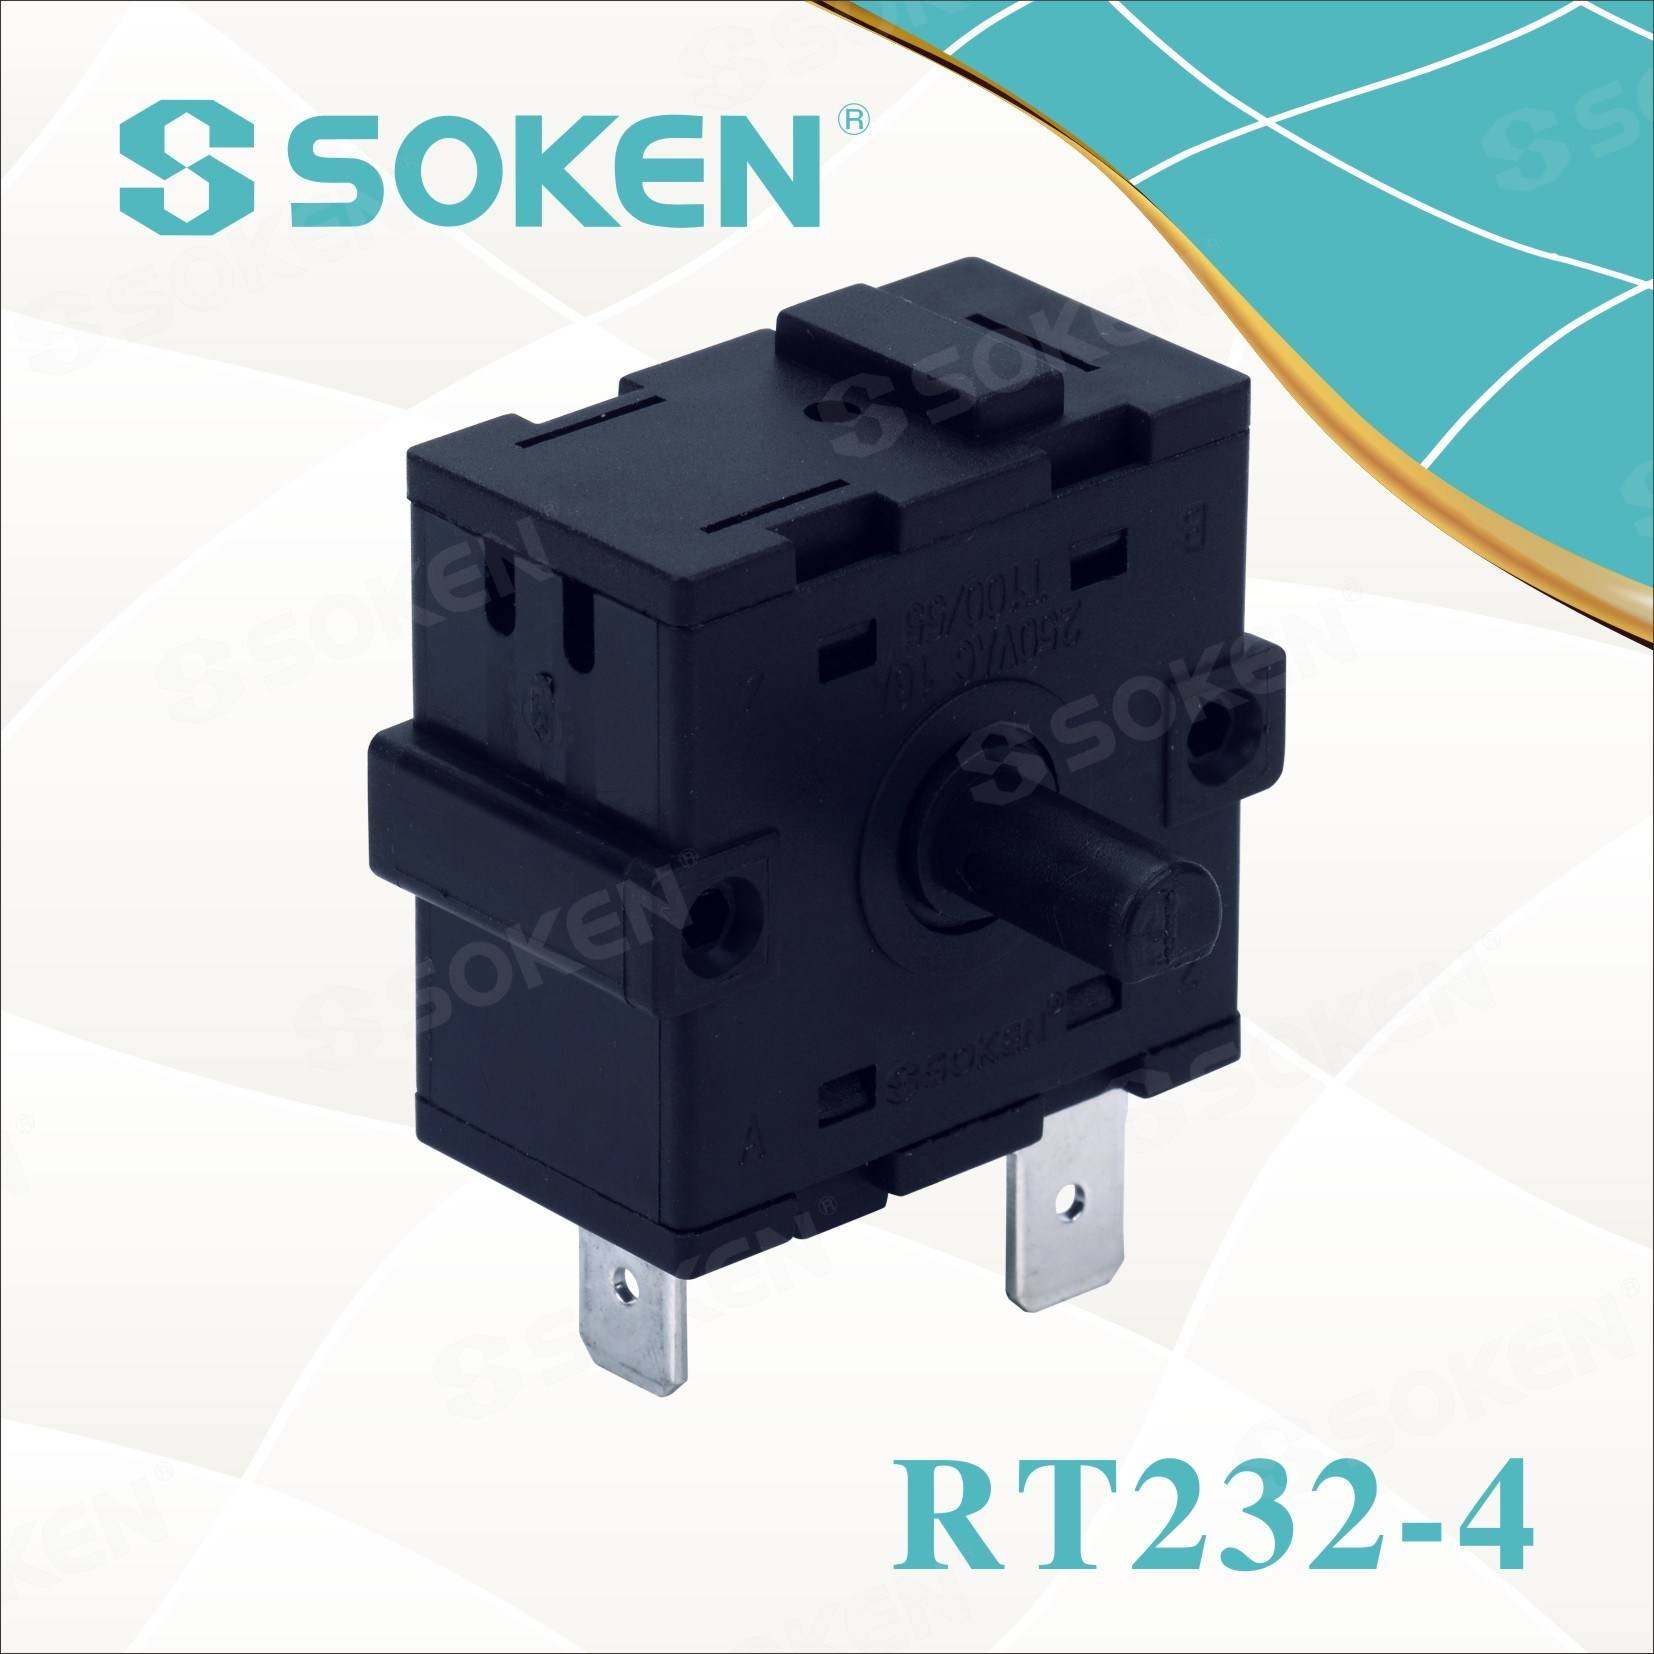 Soken Bremas Rotary Switch